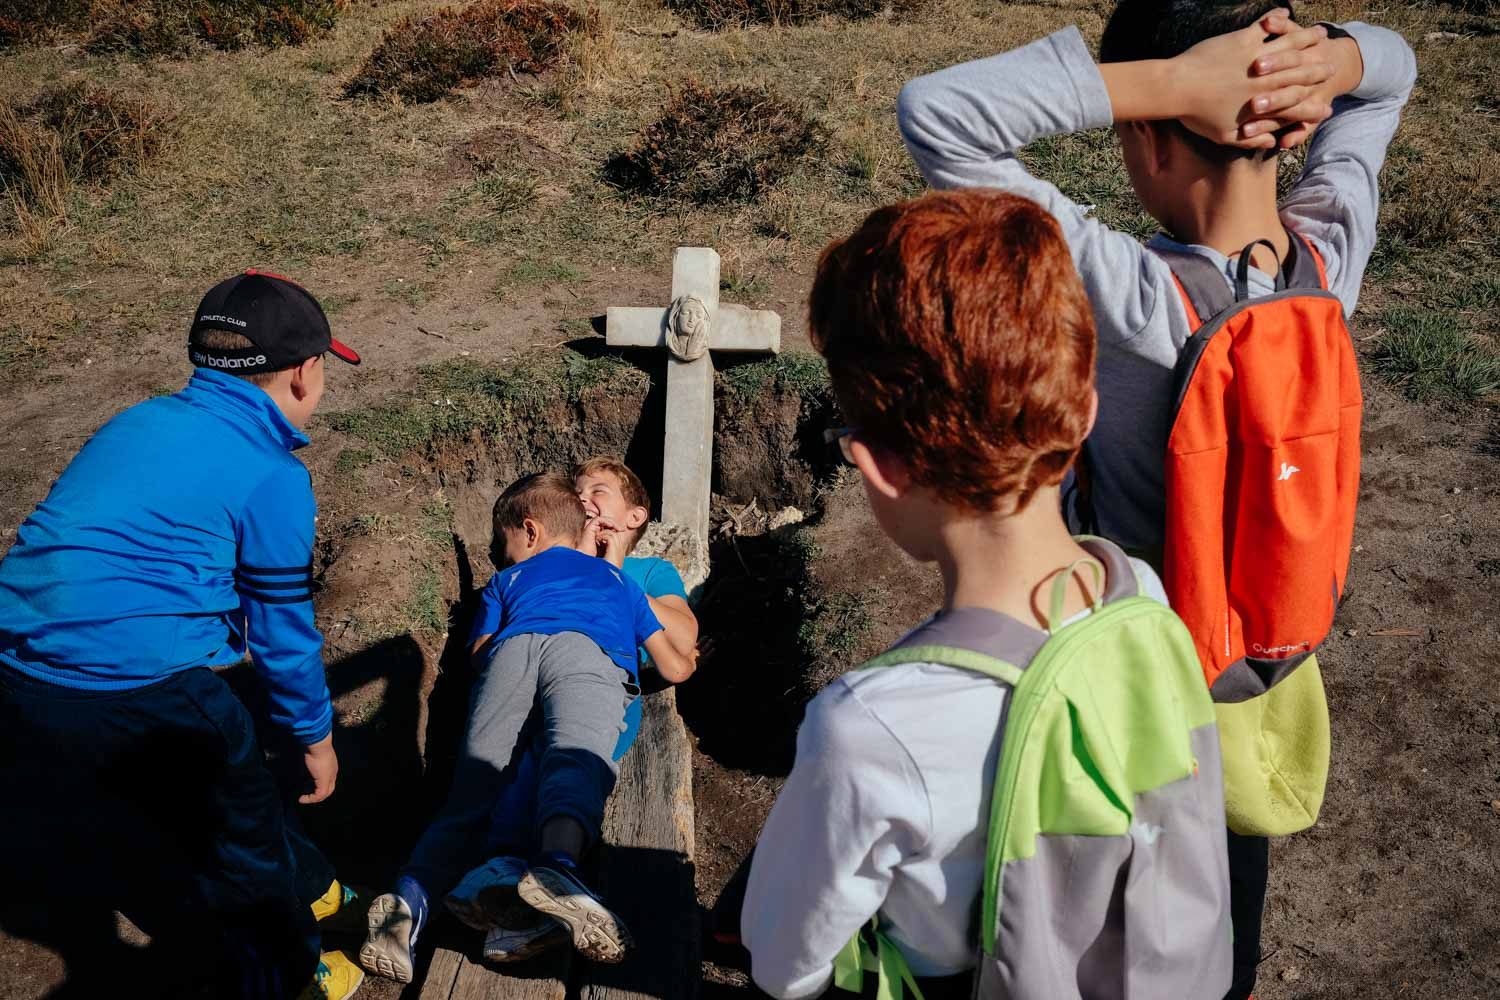 The kids from Peñaranda's Diego Marin school take turns throwing themselves into an open grave.